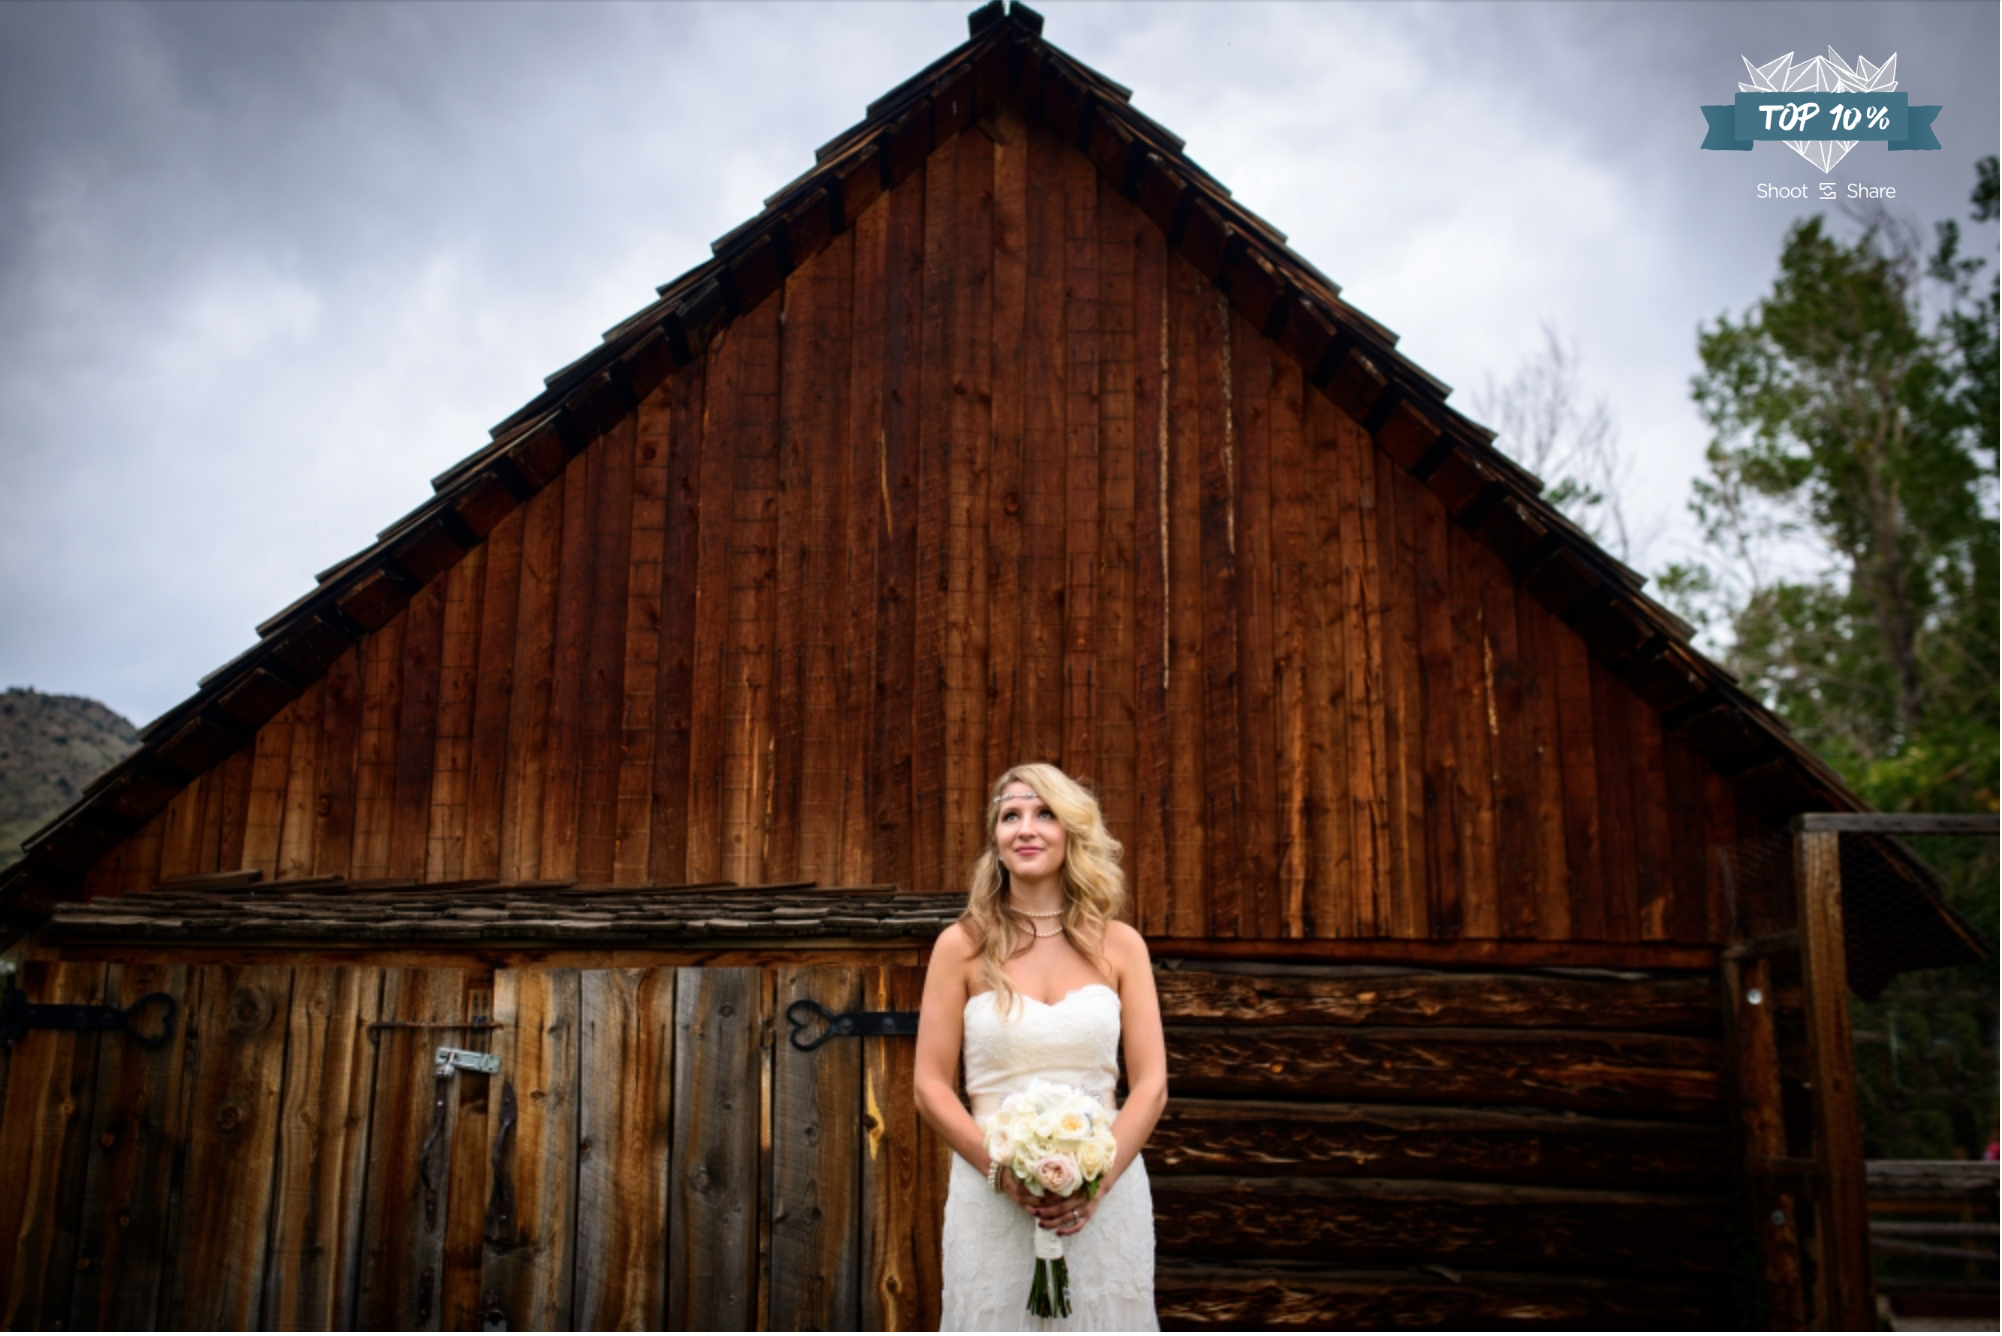 Dark Clouds moved in for intimate Antique-style Wedding; Briarwood Inn, Golden, Colorado